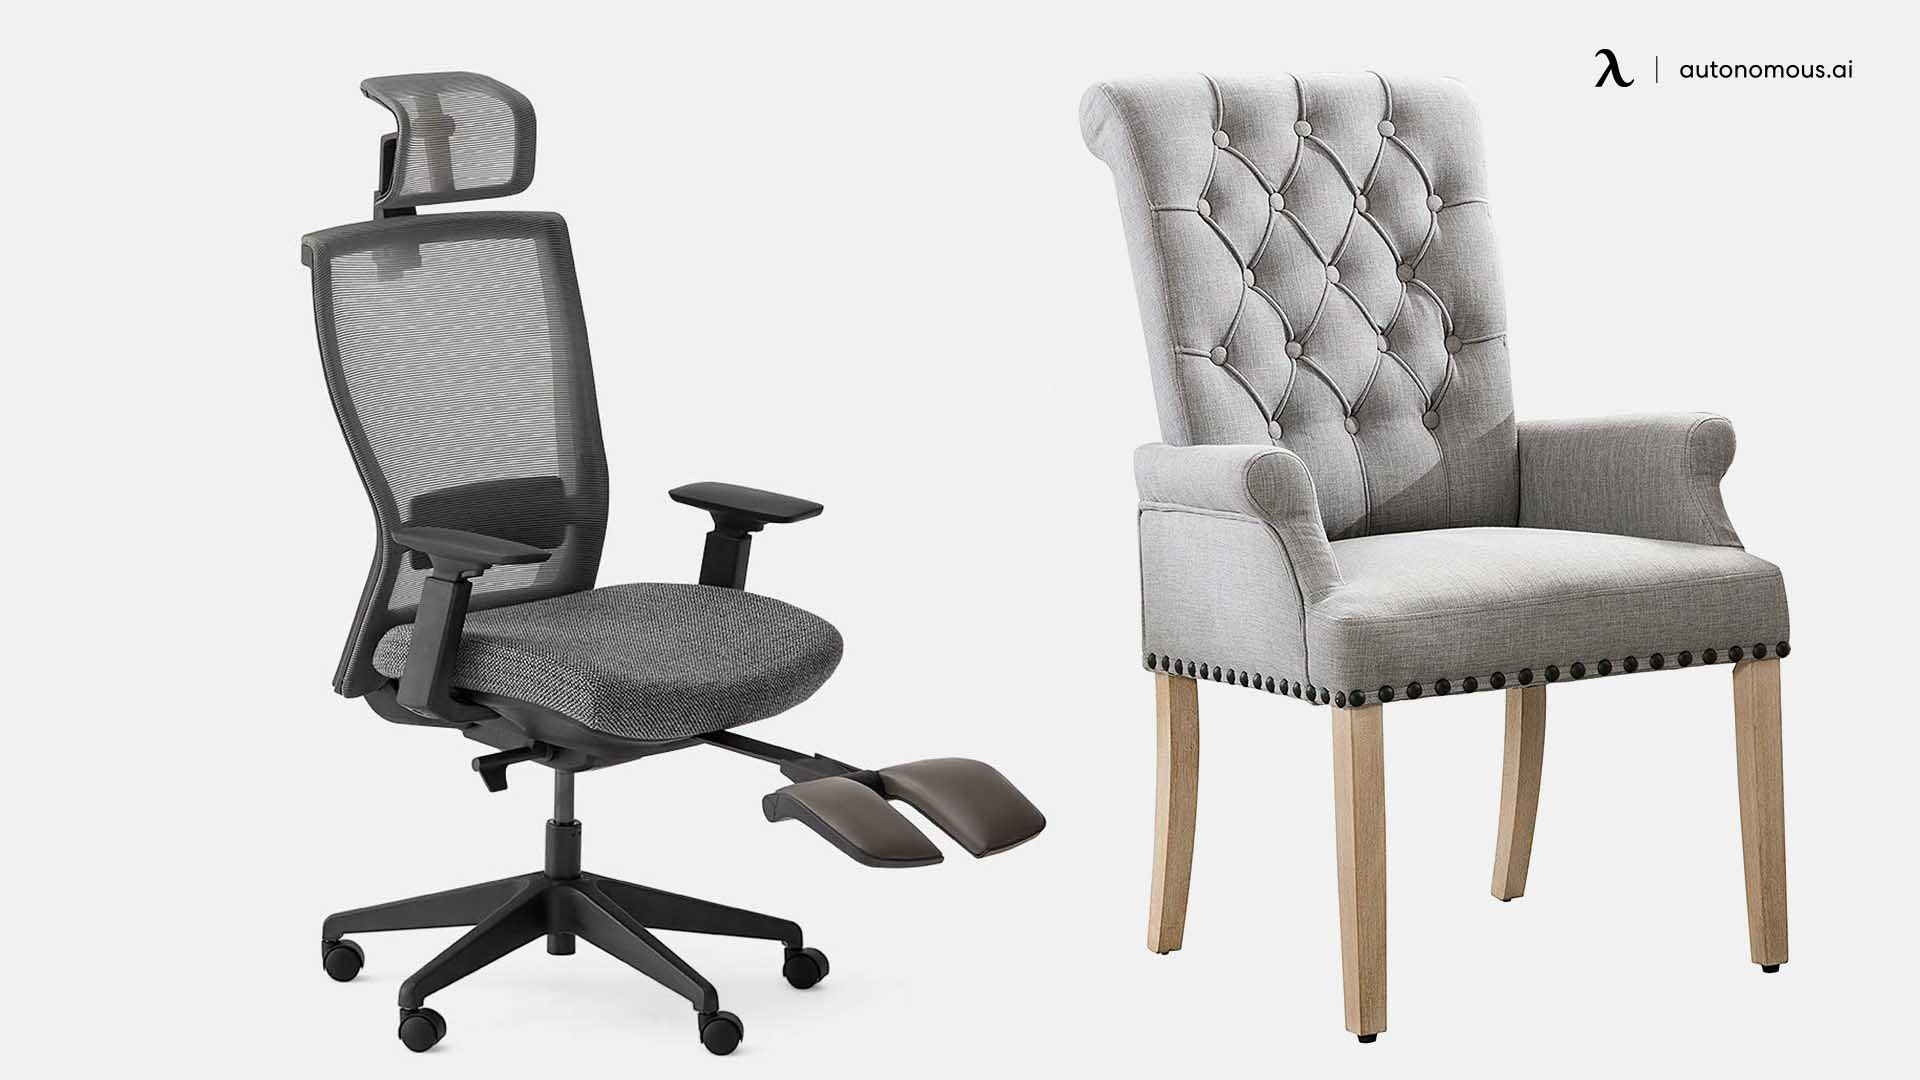 Mesh vs Upholstered Chair - Which Chair Is Better?